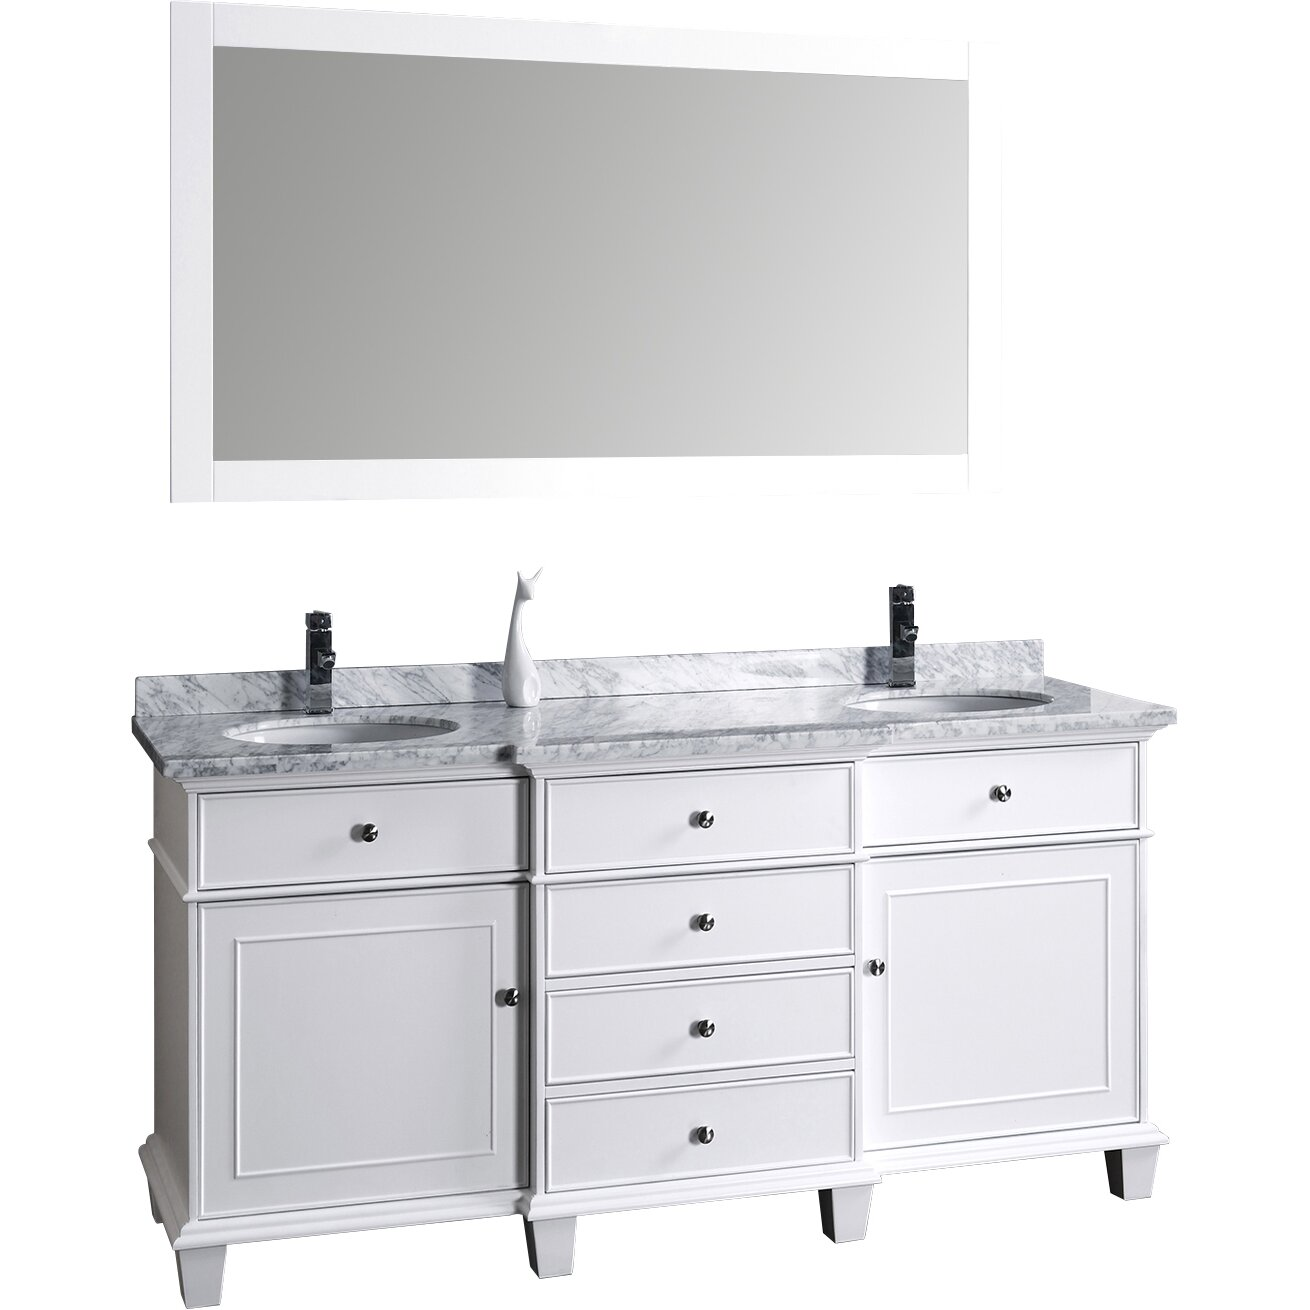 Dcor design melton 60 double sink bathroom vanity set with mirror reviews wayfair Bathroom sink and vanity sets